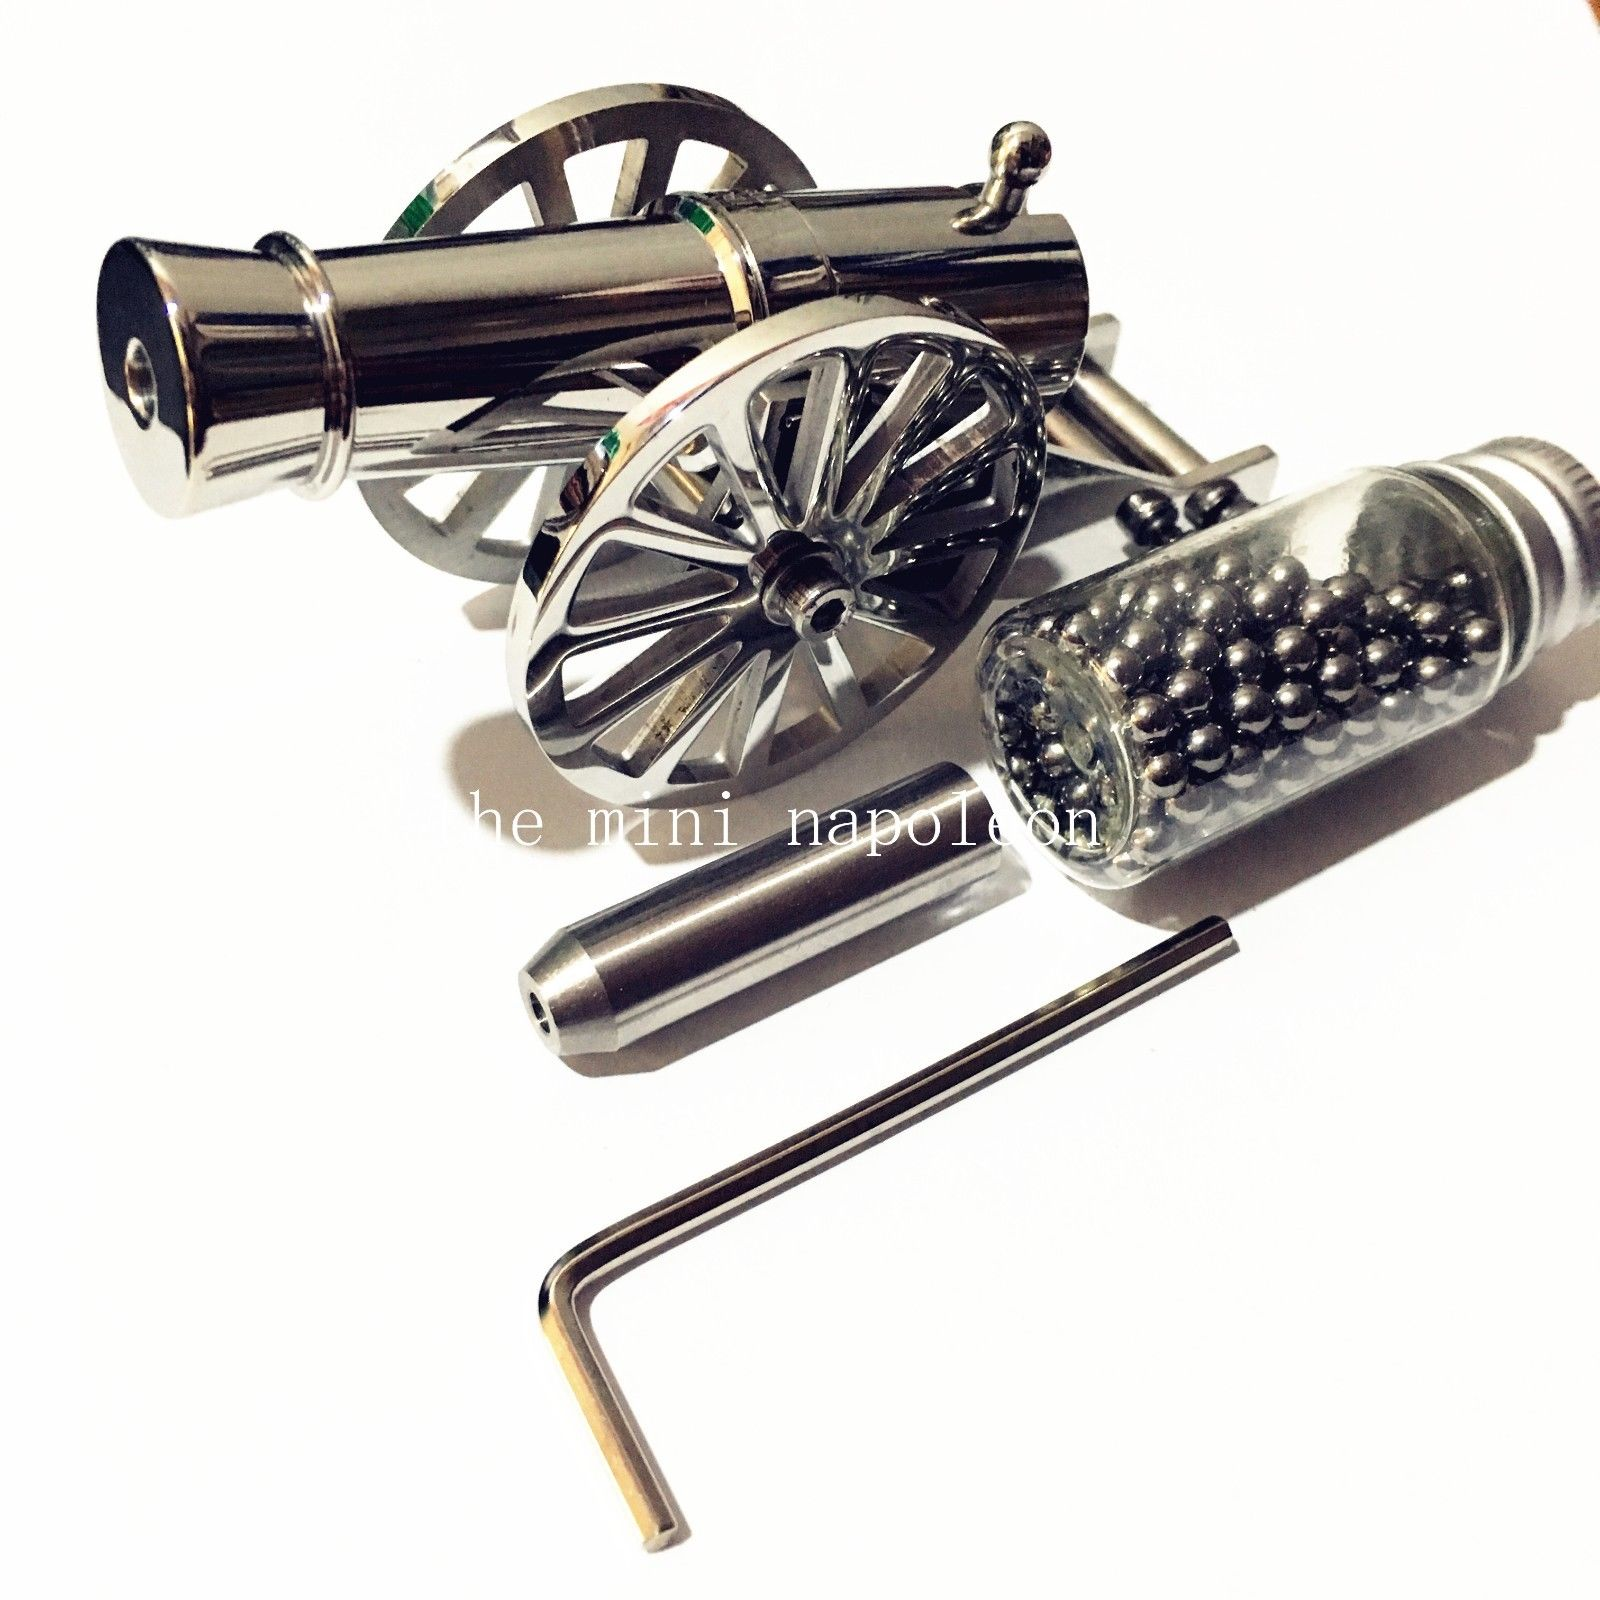 Classic Mini Warriors Napoleon Cannon stainless steel Desktop model Naval Model Artillery ornaments Collectibles catapult Toys